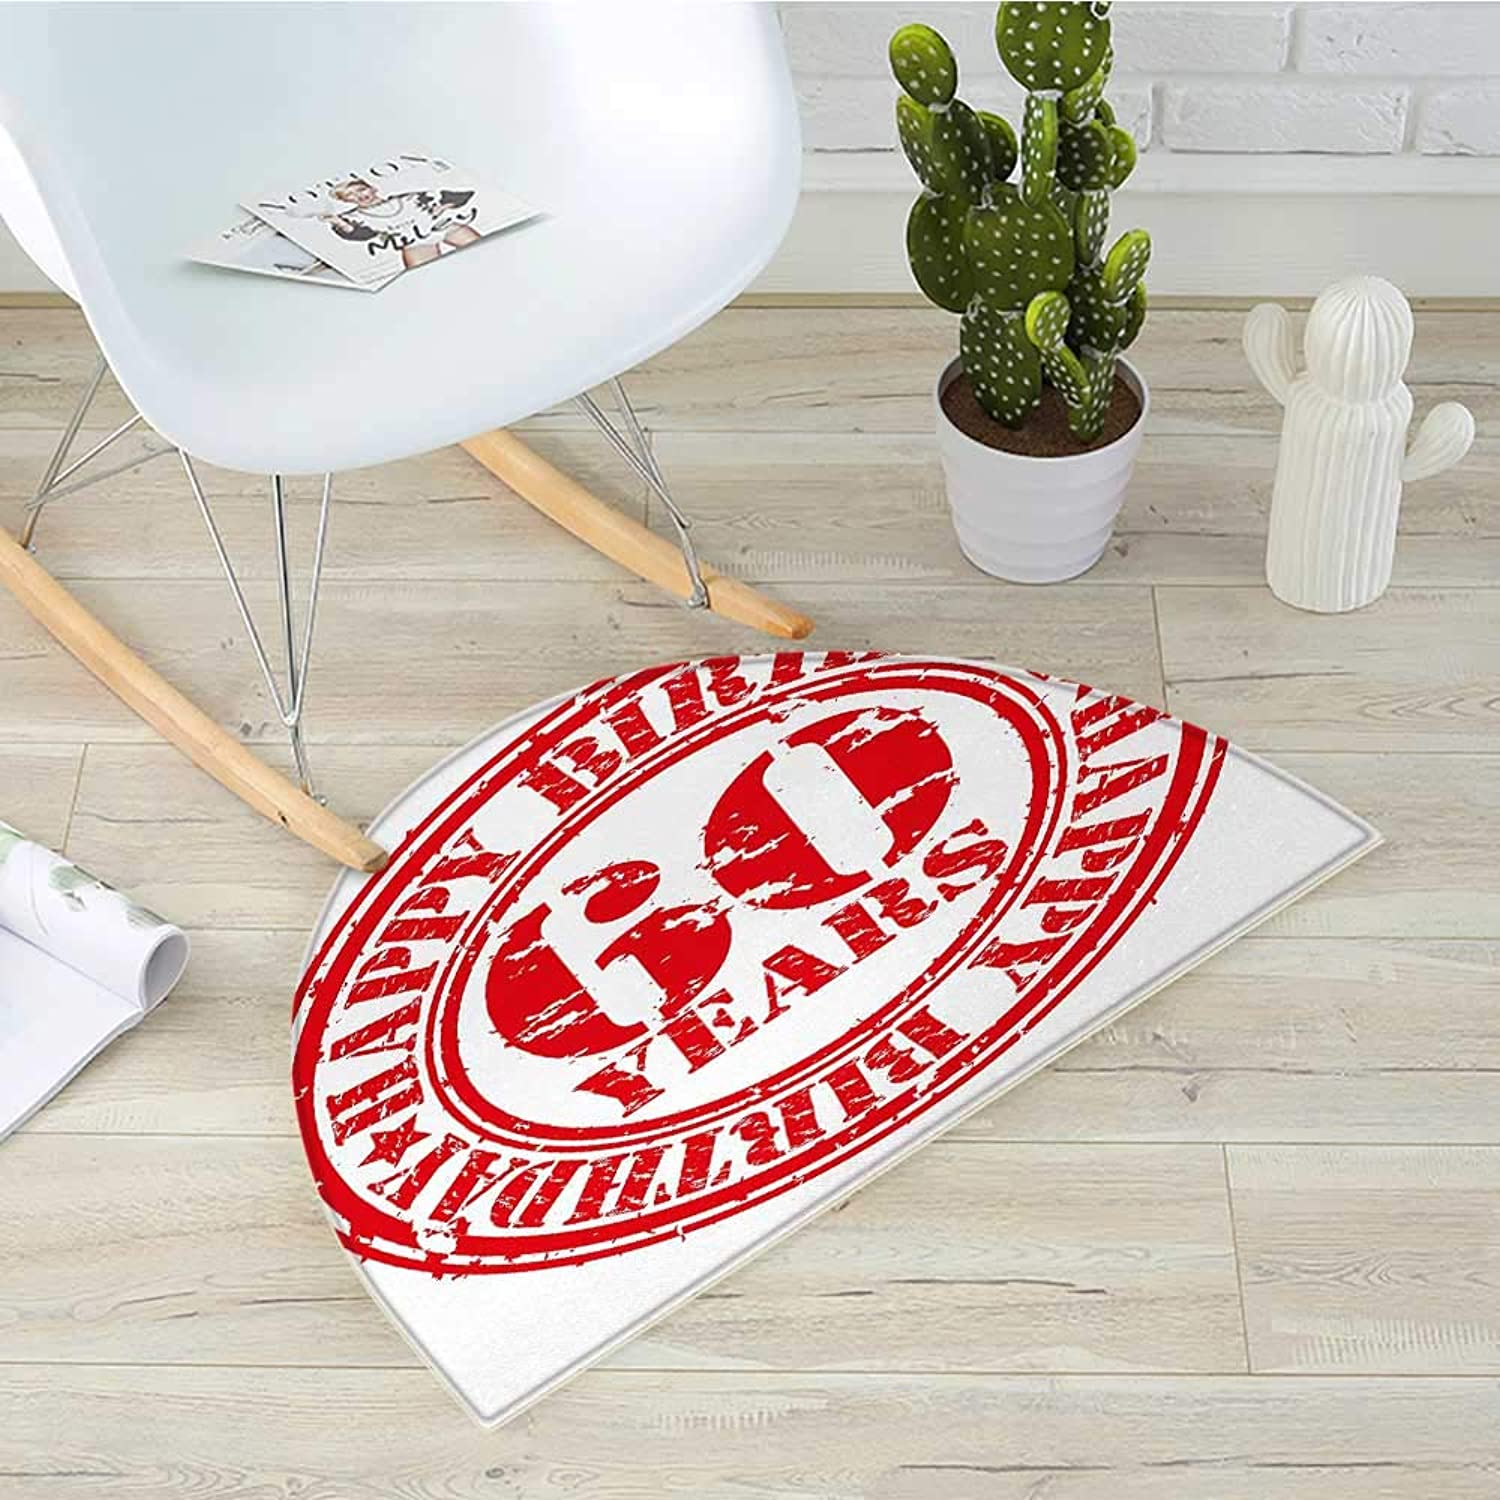 60th Birthday Semicircular CushionAbstract Grunge Style Happy Sixty Party Theme Retro Stamp Slogan Print Entry Door Mat H 31.5  xD 47.2  Red and White